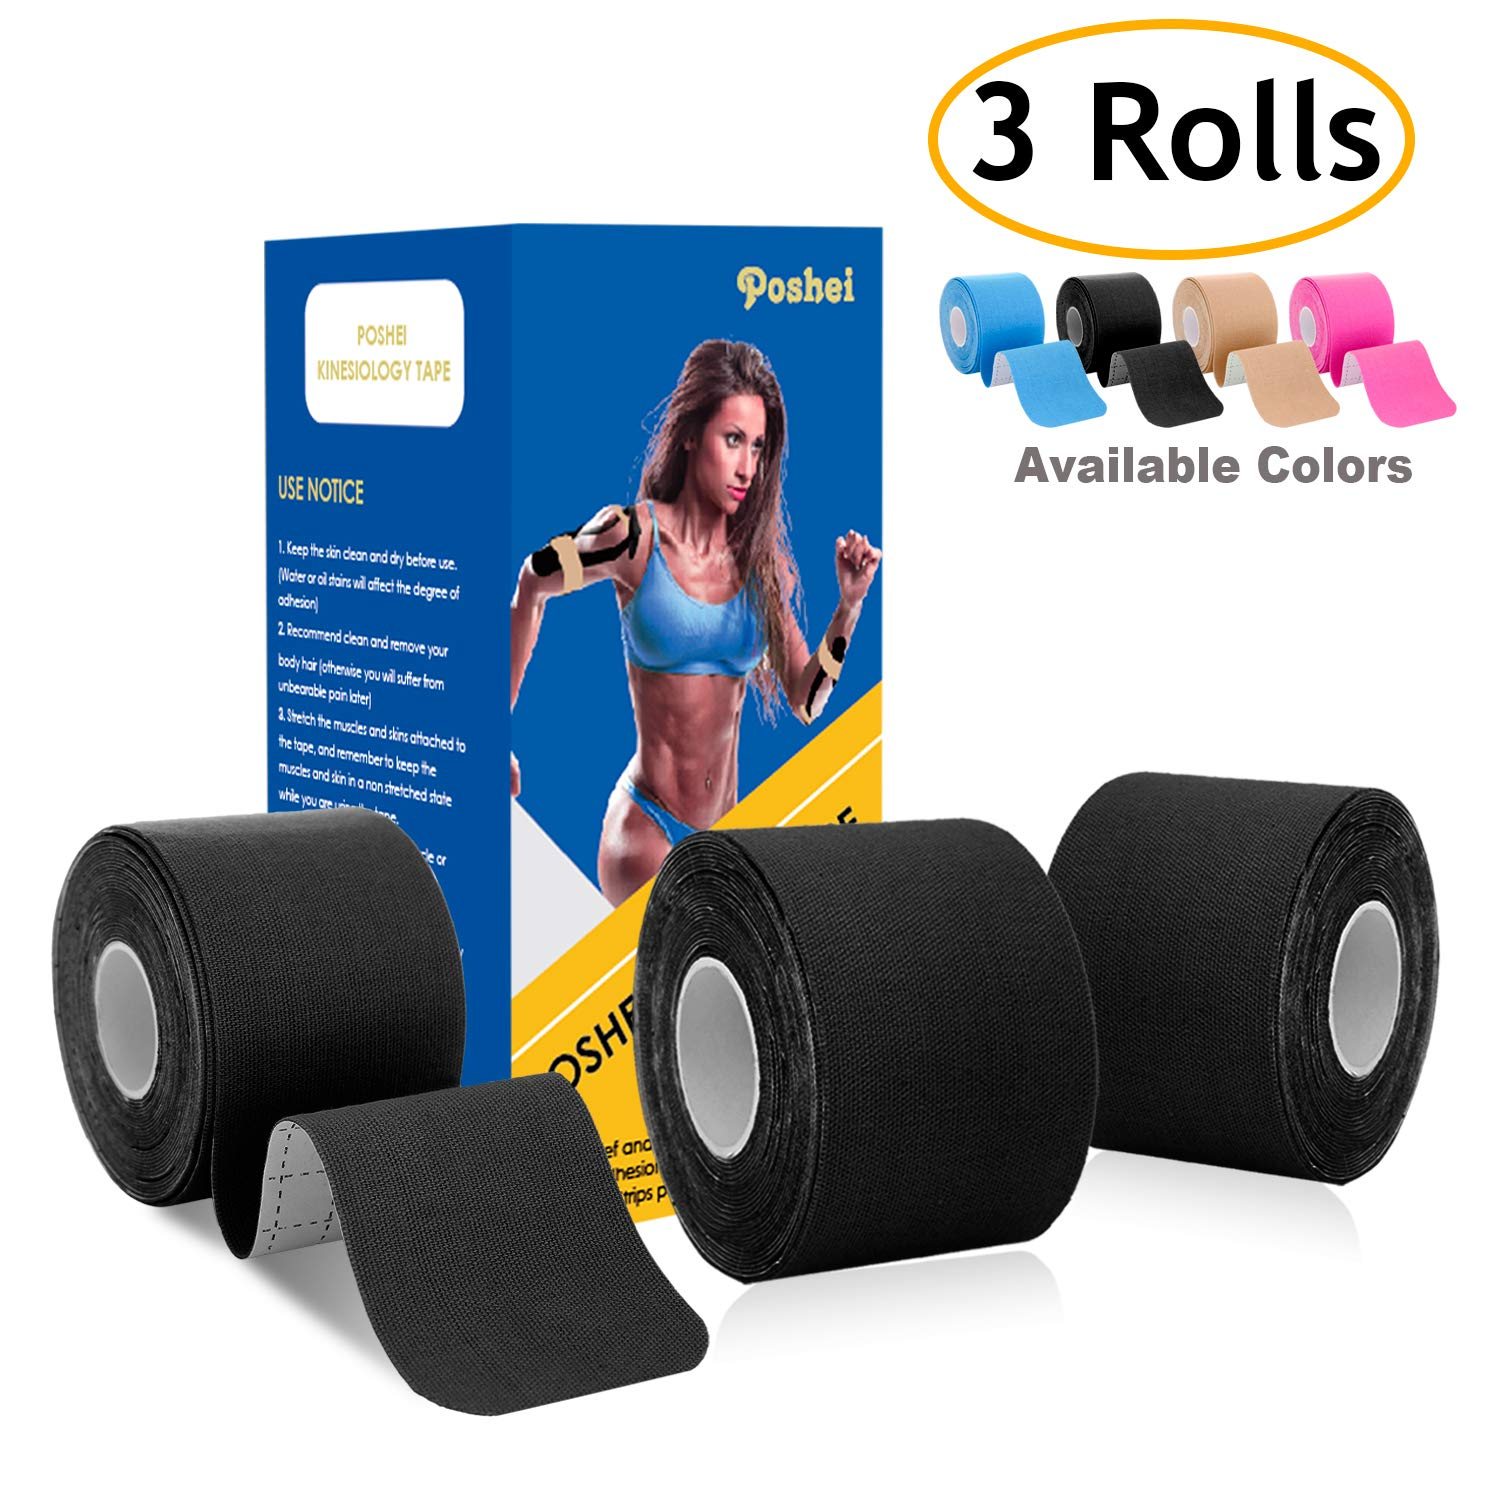 poshei Kinesiology Tape Precut (3 Rolls Pack), Elastic Therapeutic Sports Tape - Pain Relief Adhesive for Shoulder Knee Elbow Ankle, Waterproof, Breathable, Latex Free, 2'' x 16.5 feet Per Roll